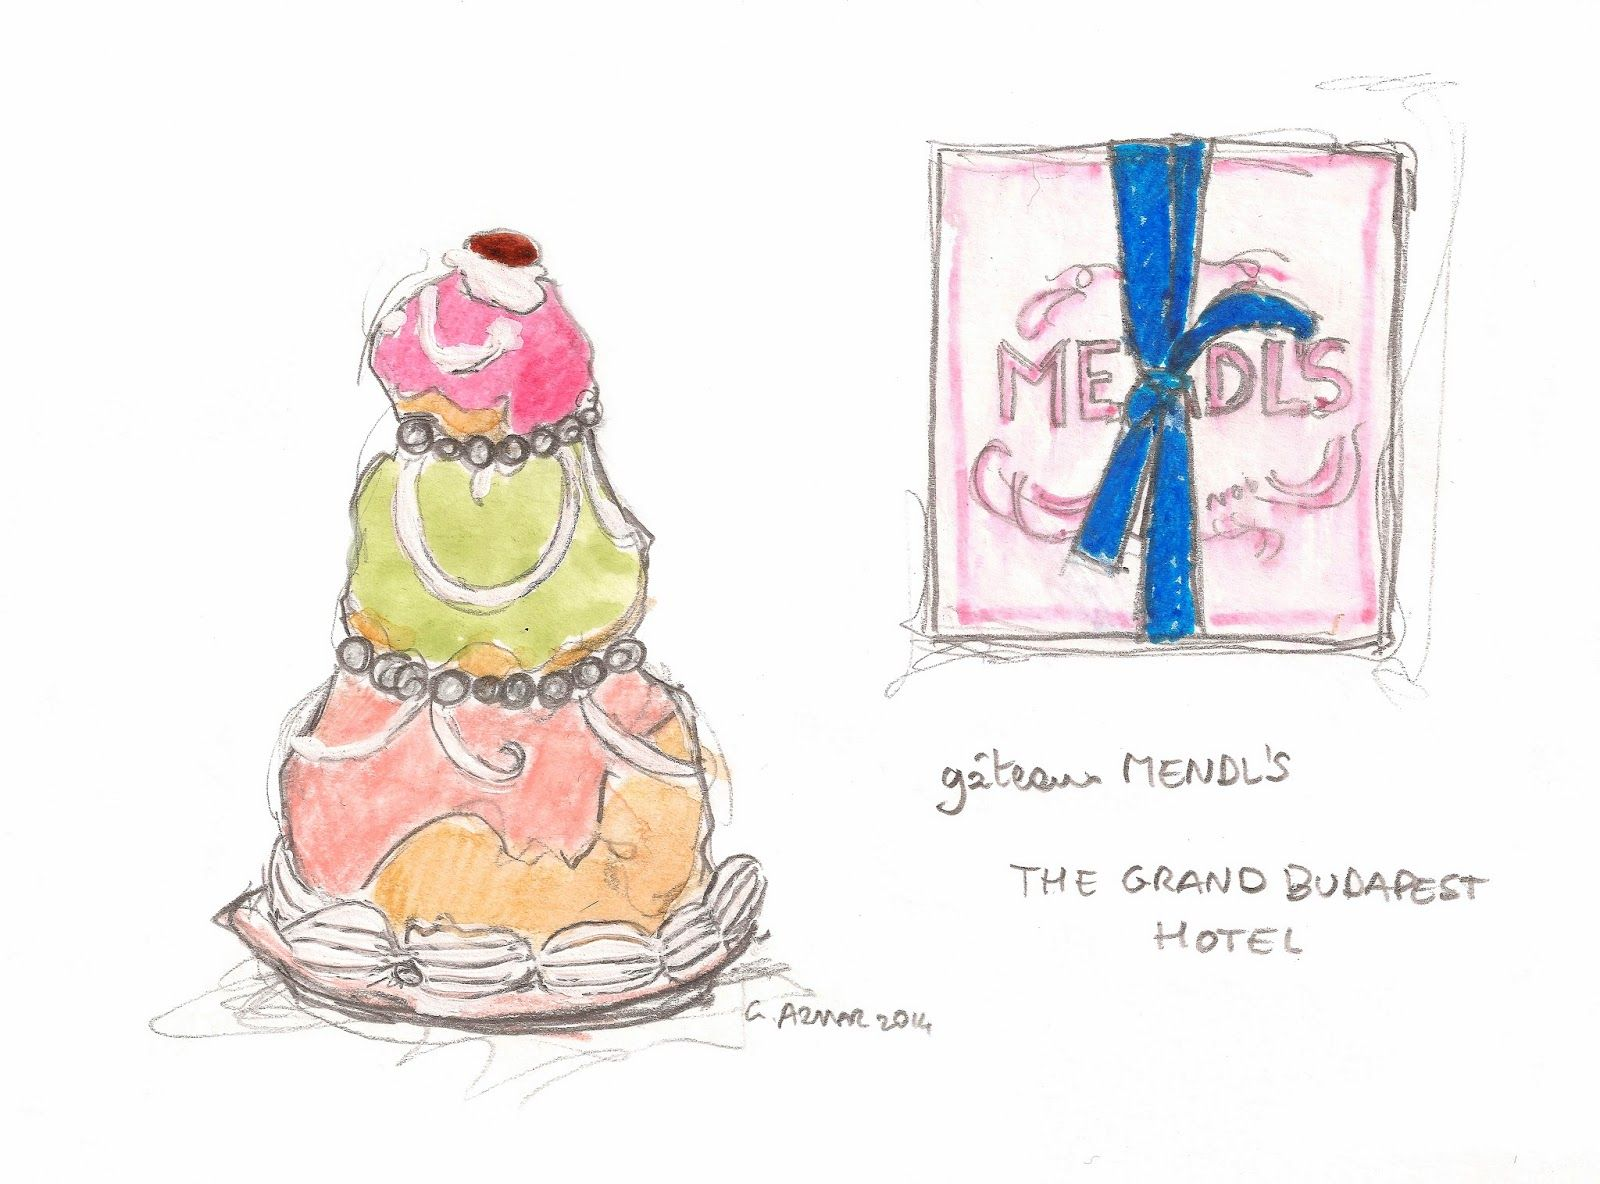 the grand budapest hotel illustration google search cinema mendls the grand budapest hotel fan art gabrielle